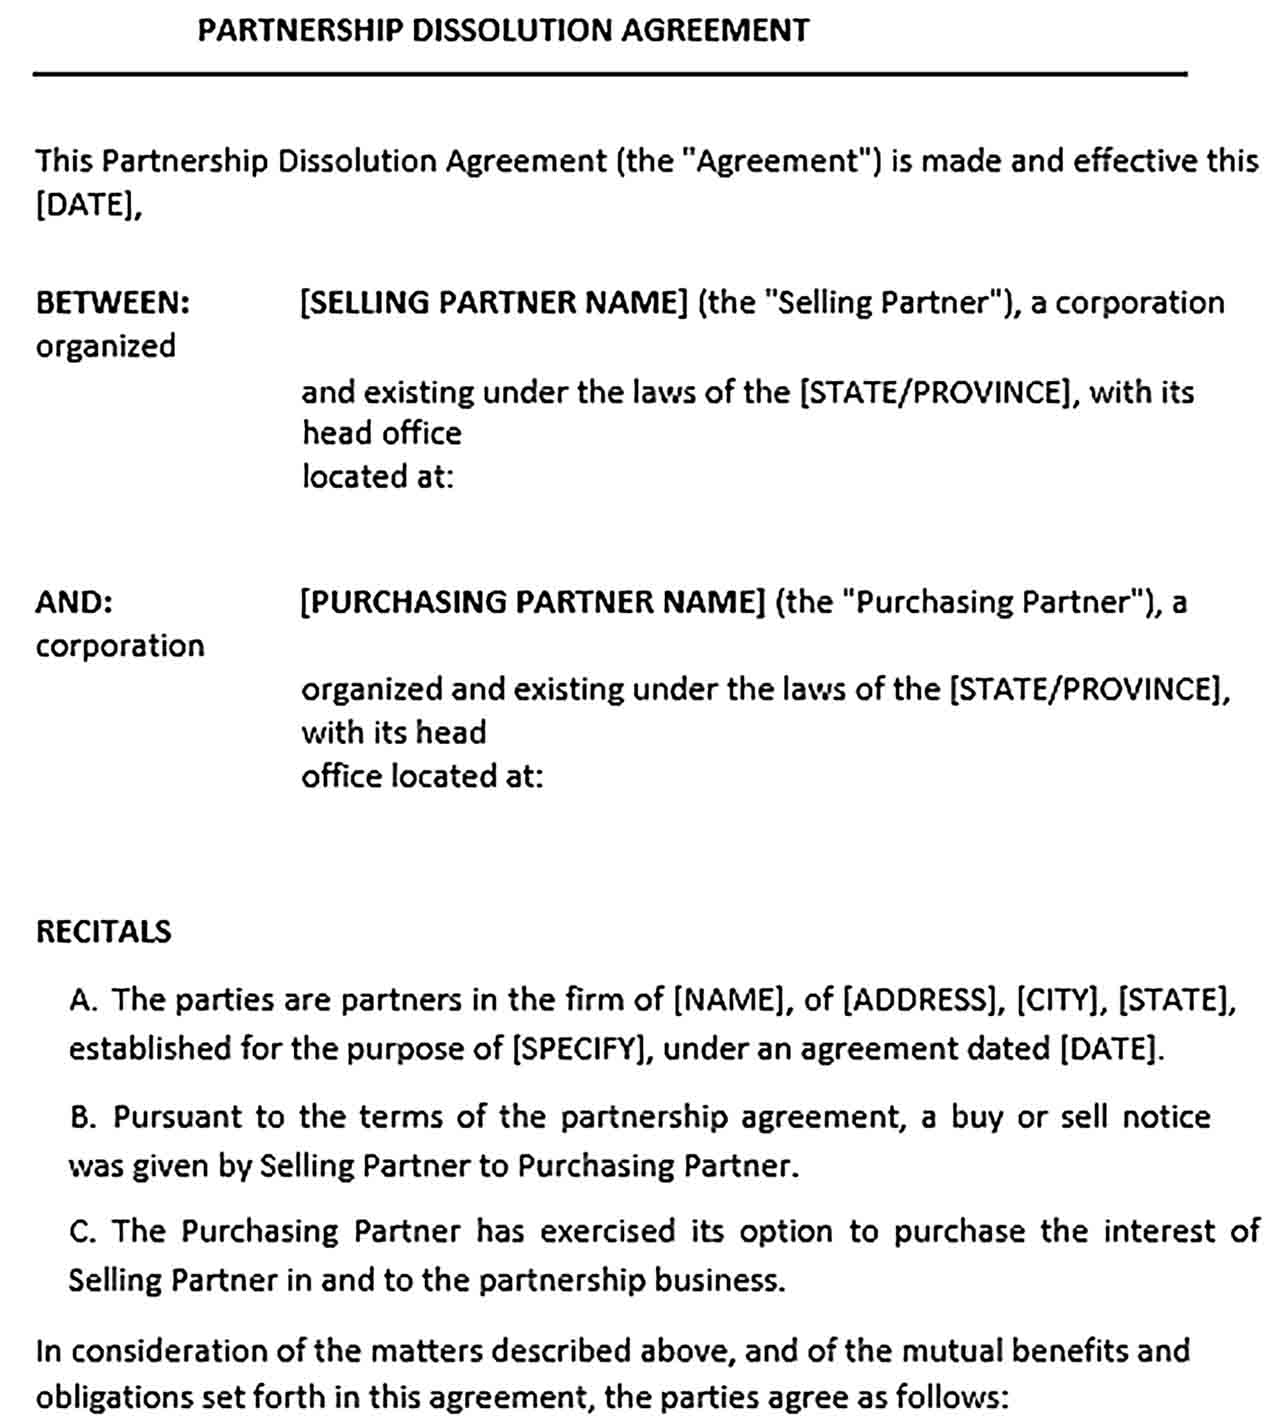 Sample Partnership Dissoluation Agreement